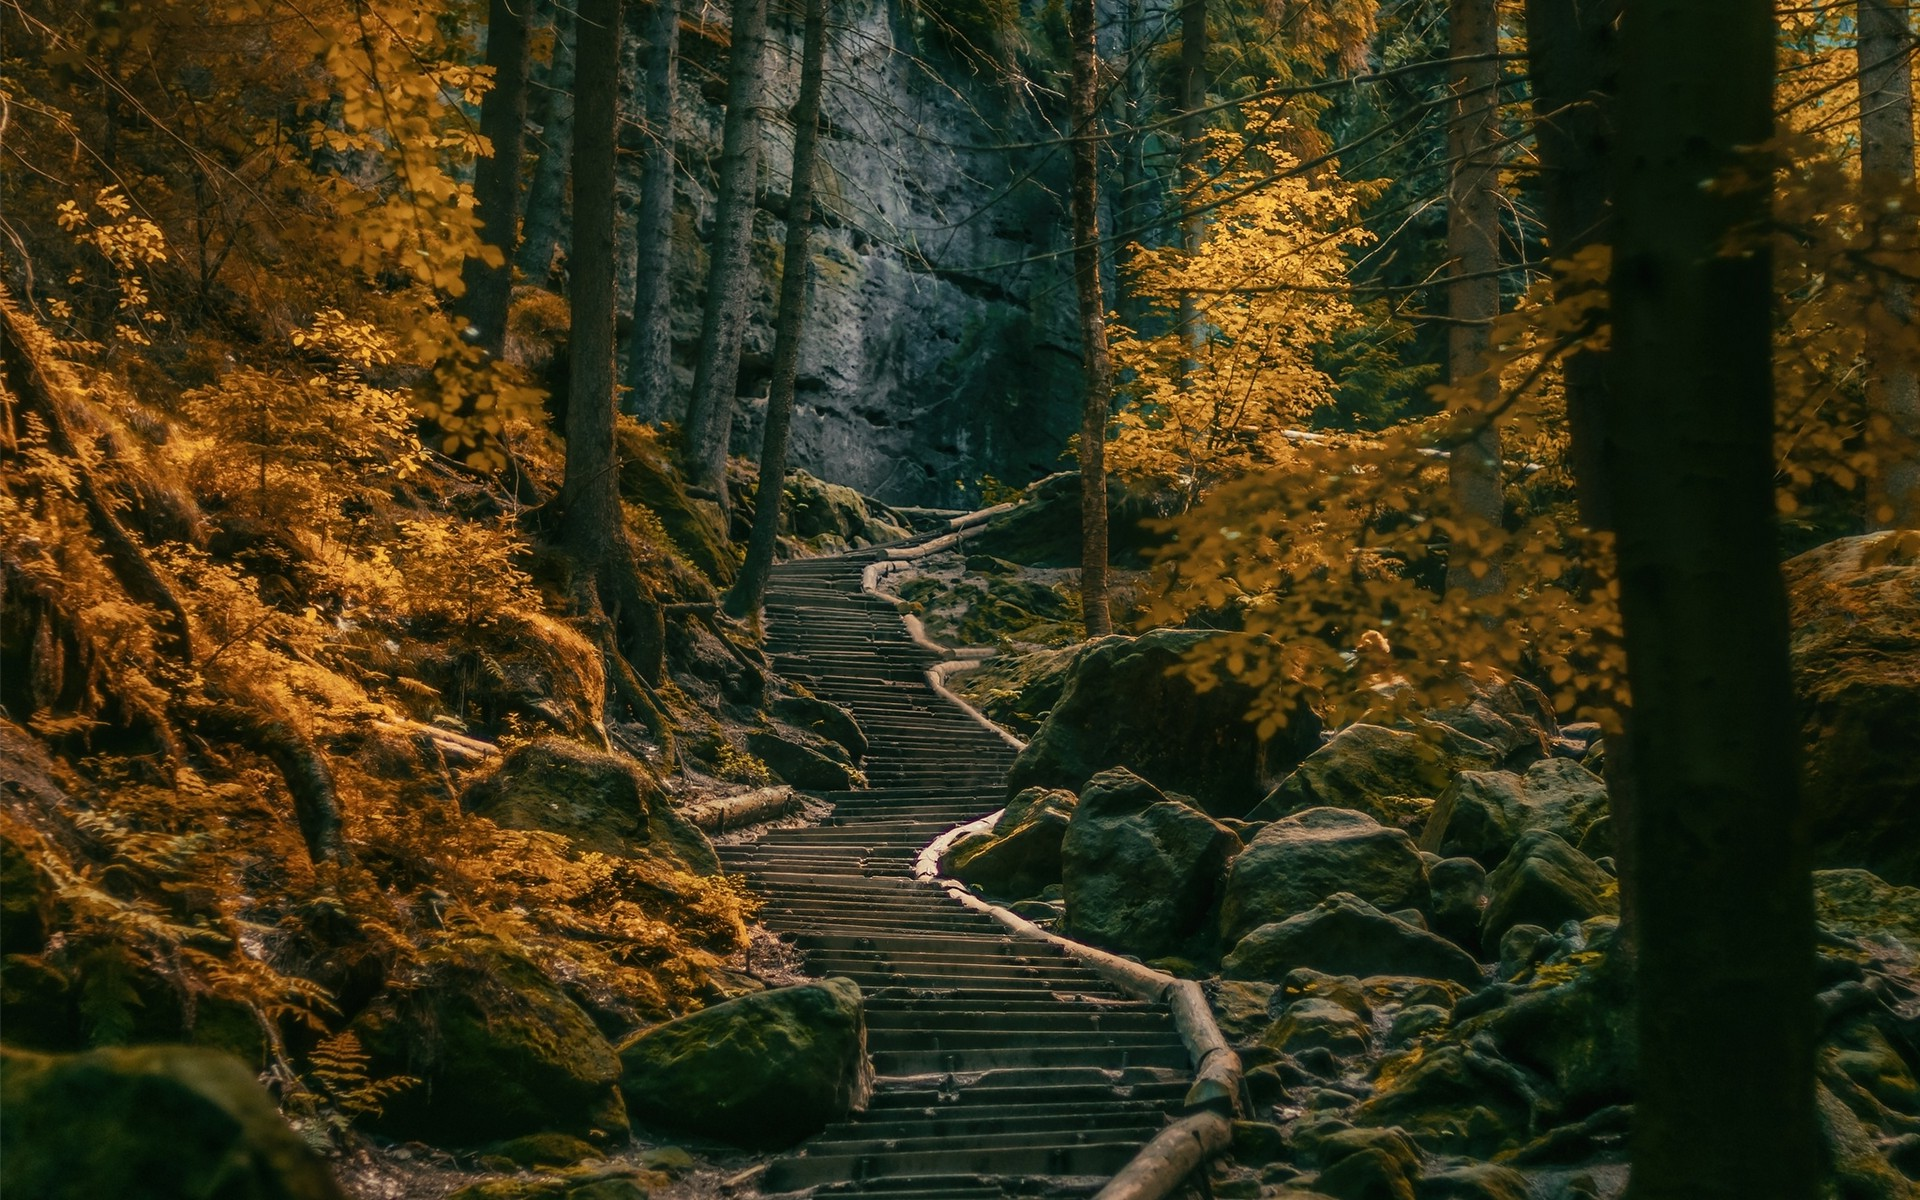 1920x1080 Fall Urban Wallpaper Path Stairs Dark Forest Germany Nature Landscape